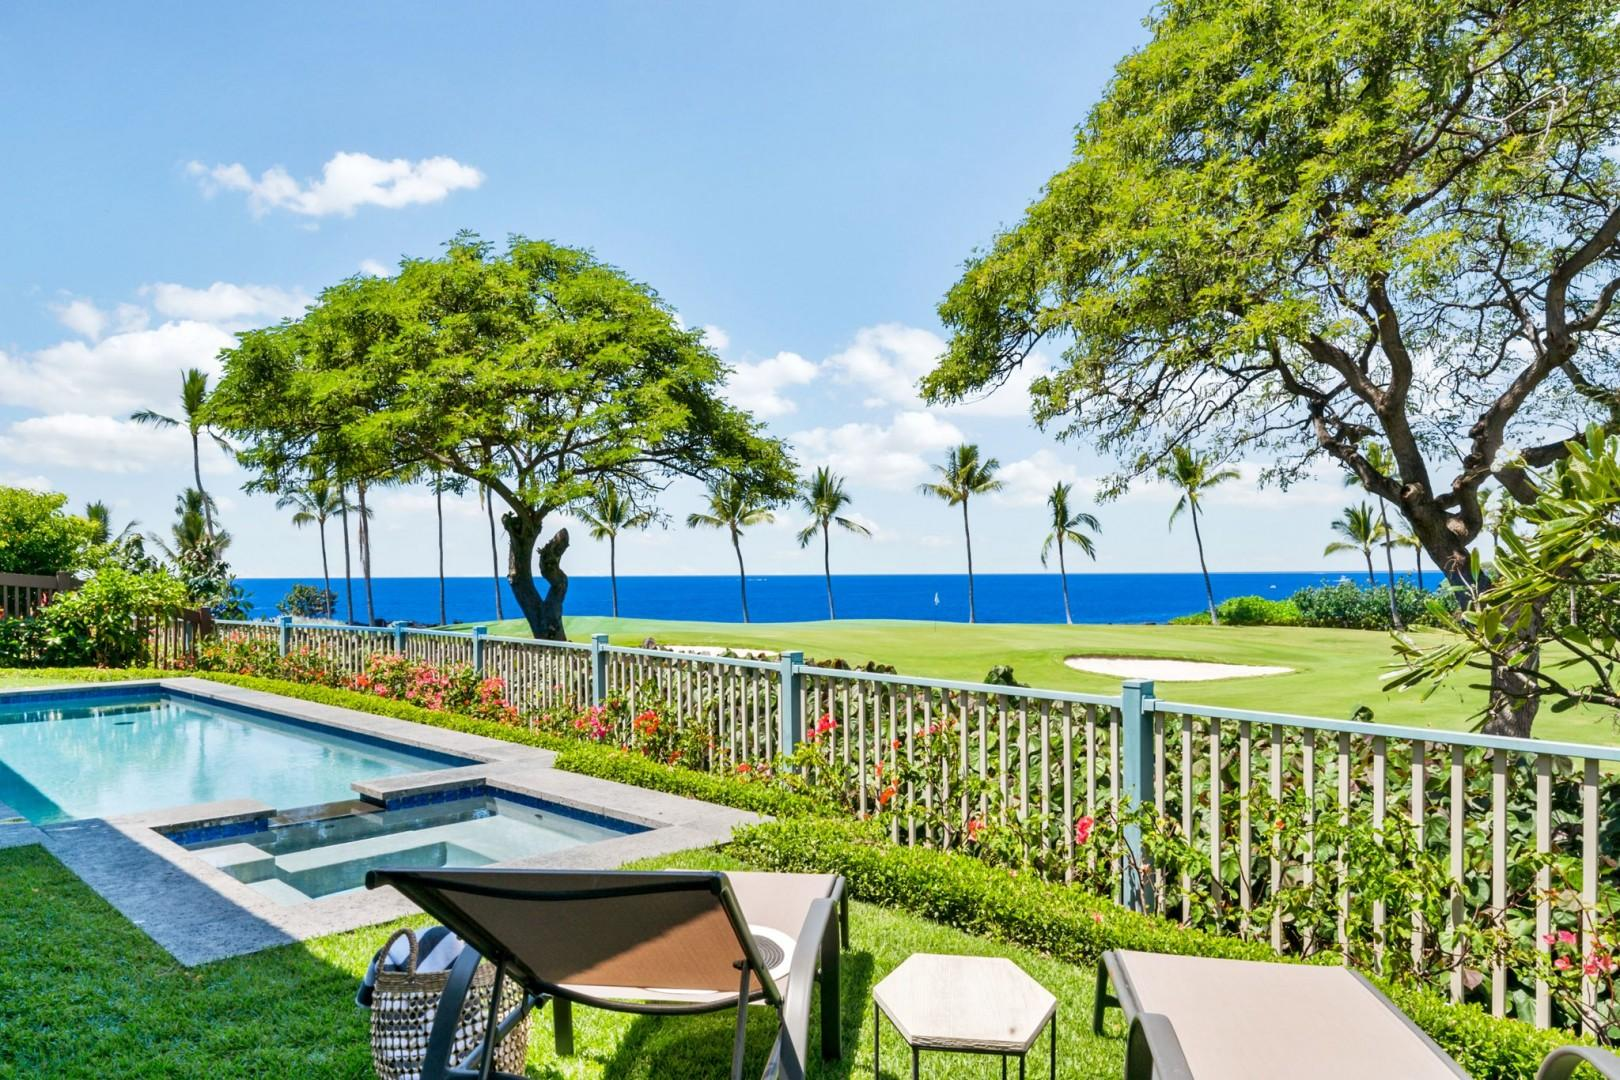 Kona Country Club golf course in front of the pool